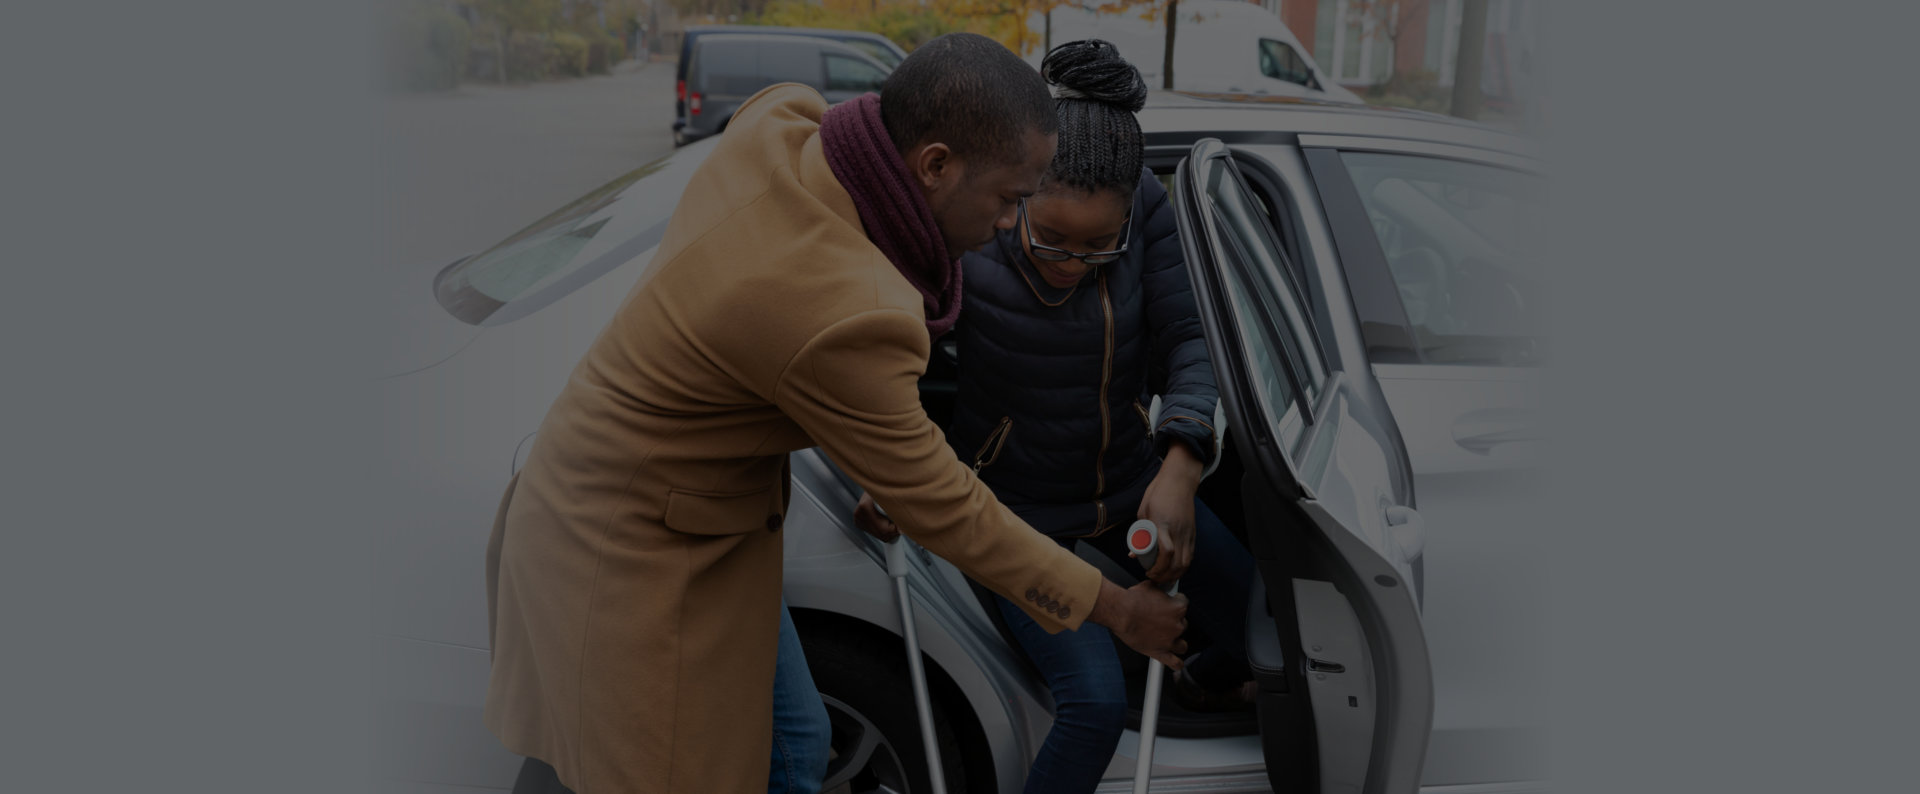 man assisting woman in the car